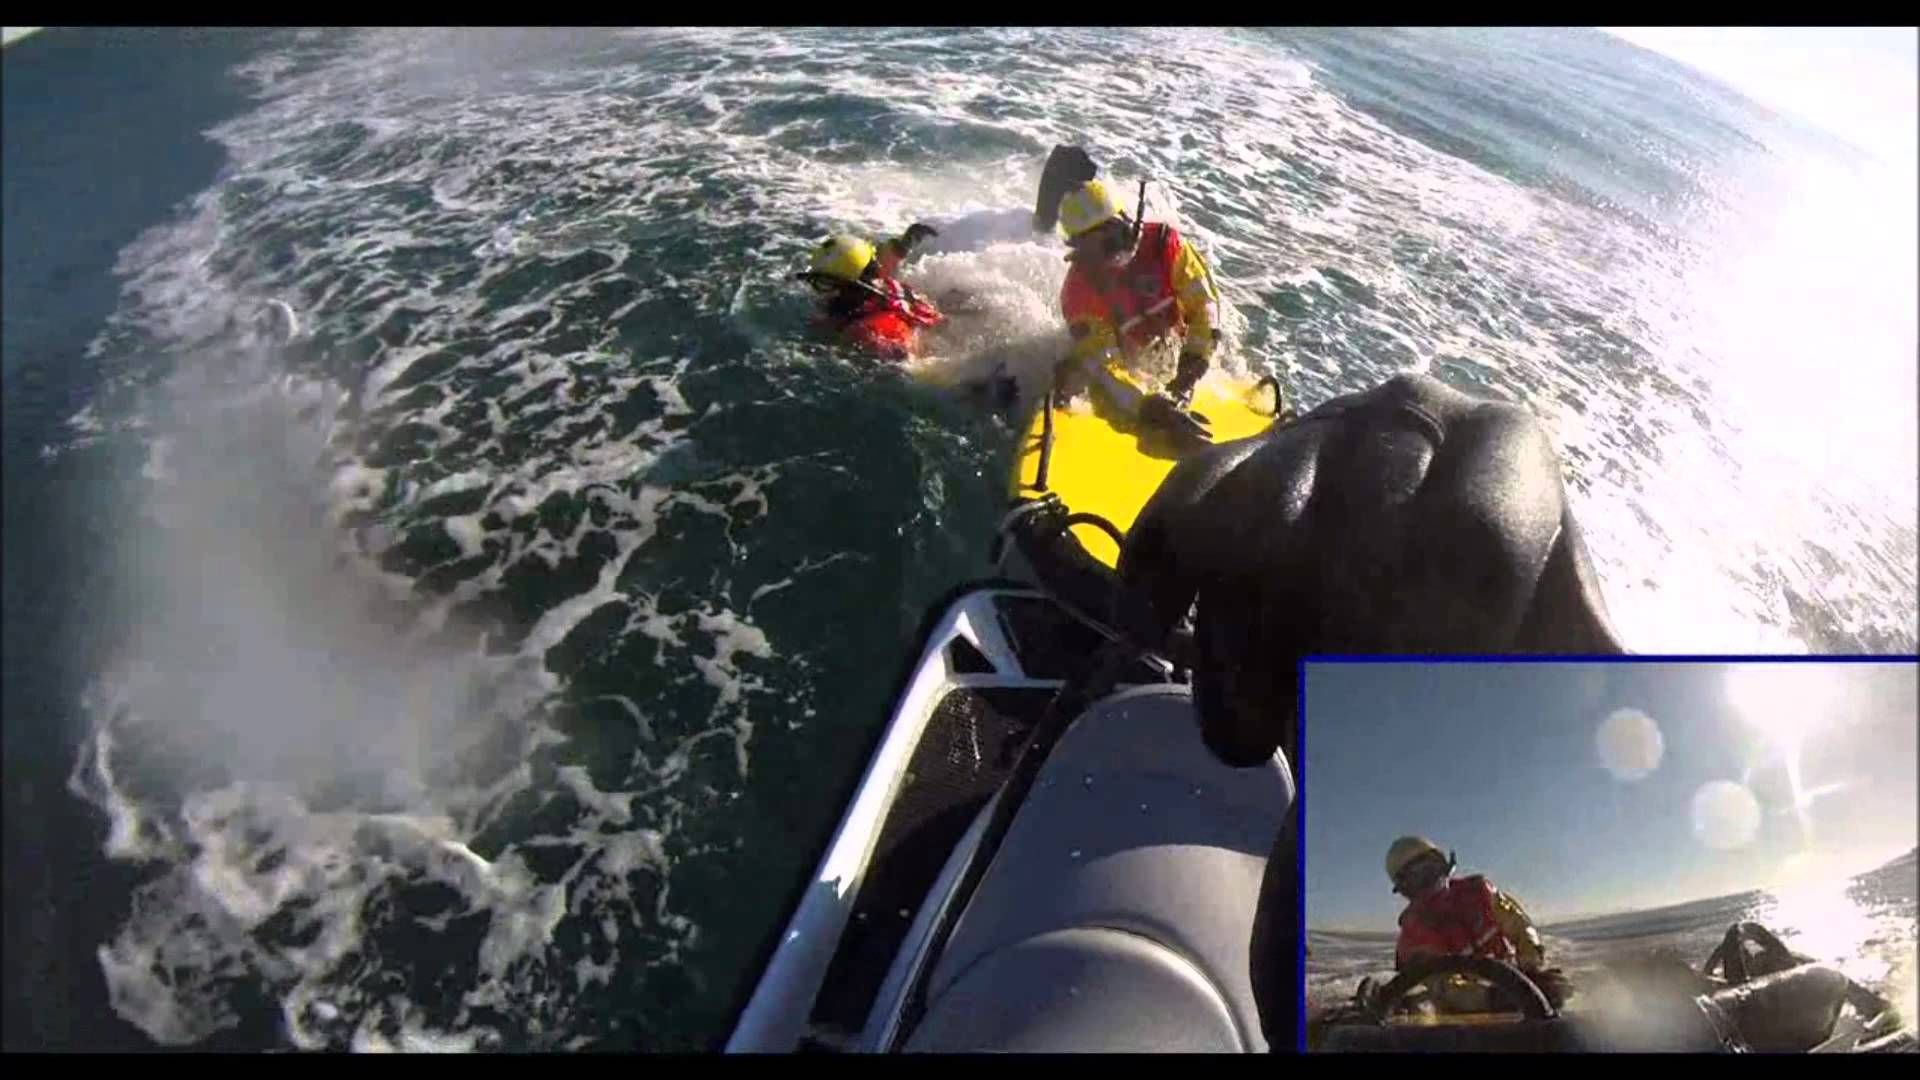 K38 Big Wave Rescue Water Craft Rescue Board Transitions